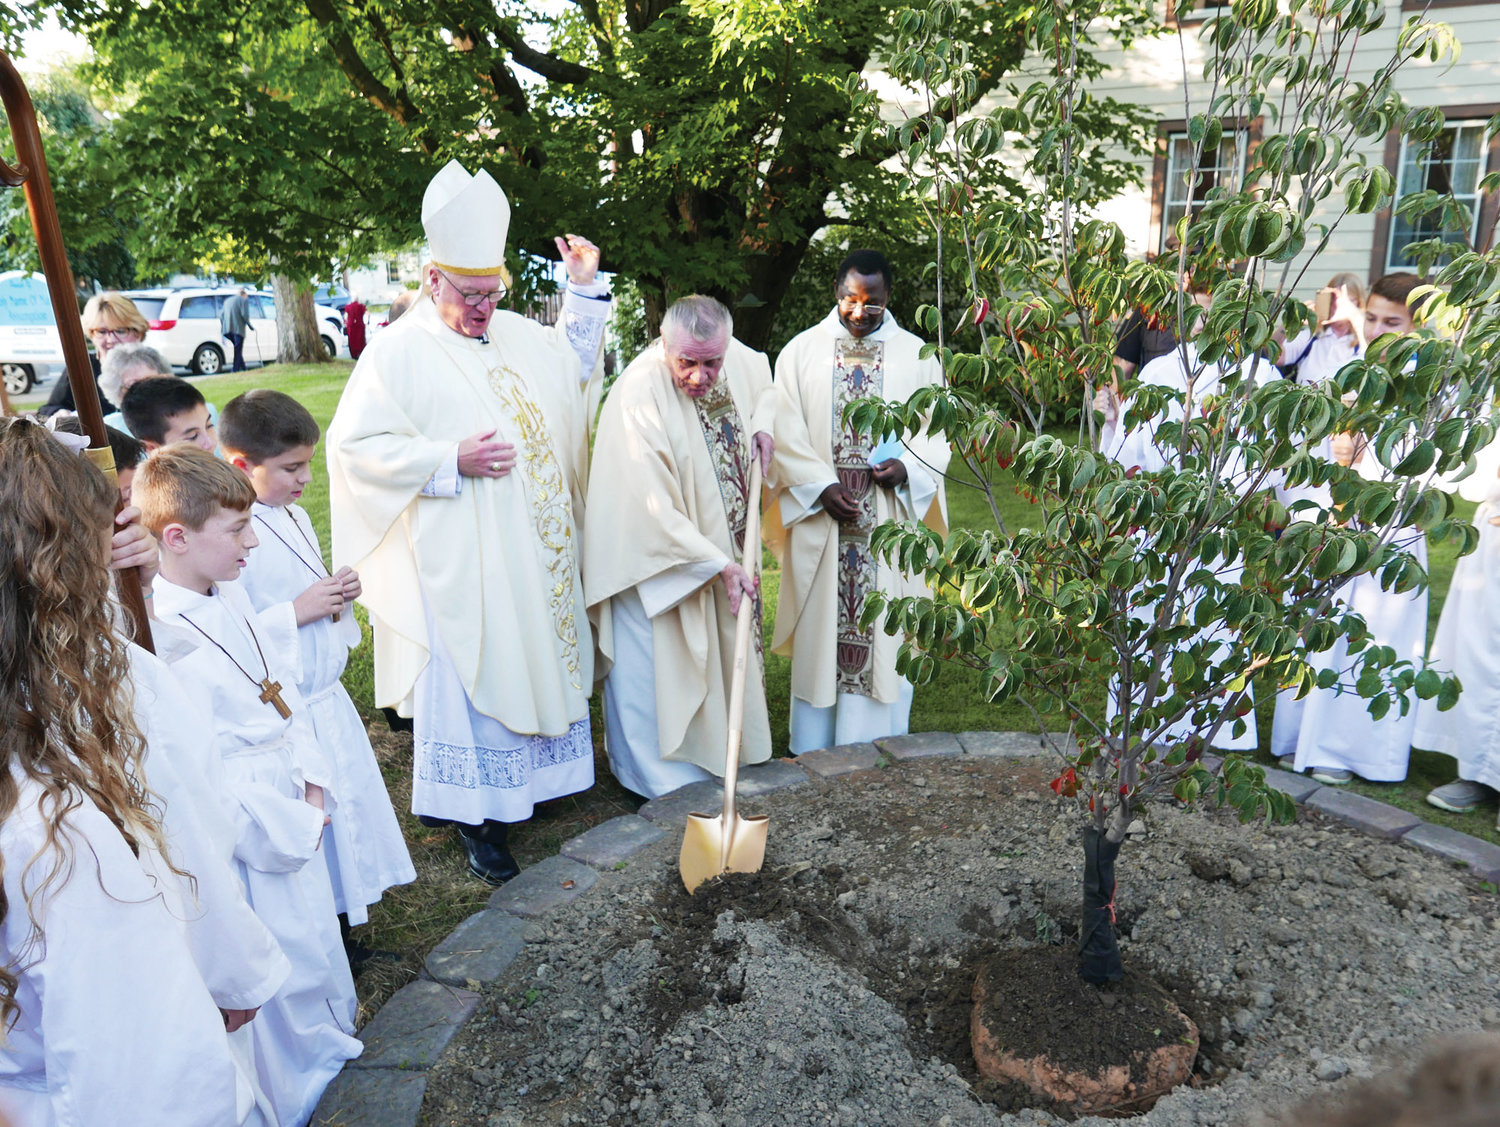 Father Daniel O'Hare, parish administrator of Holy Name of Mary-Assumption, plants a tree following Mass.